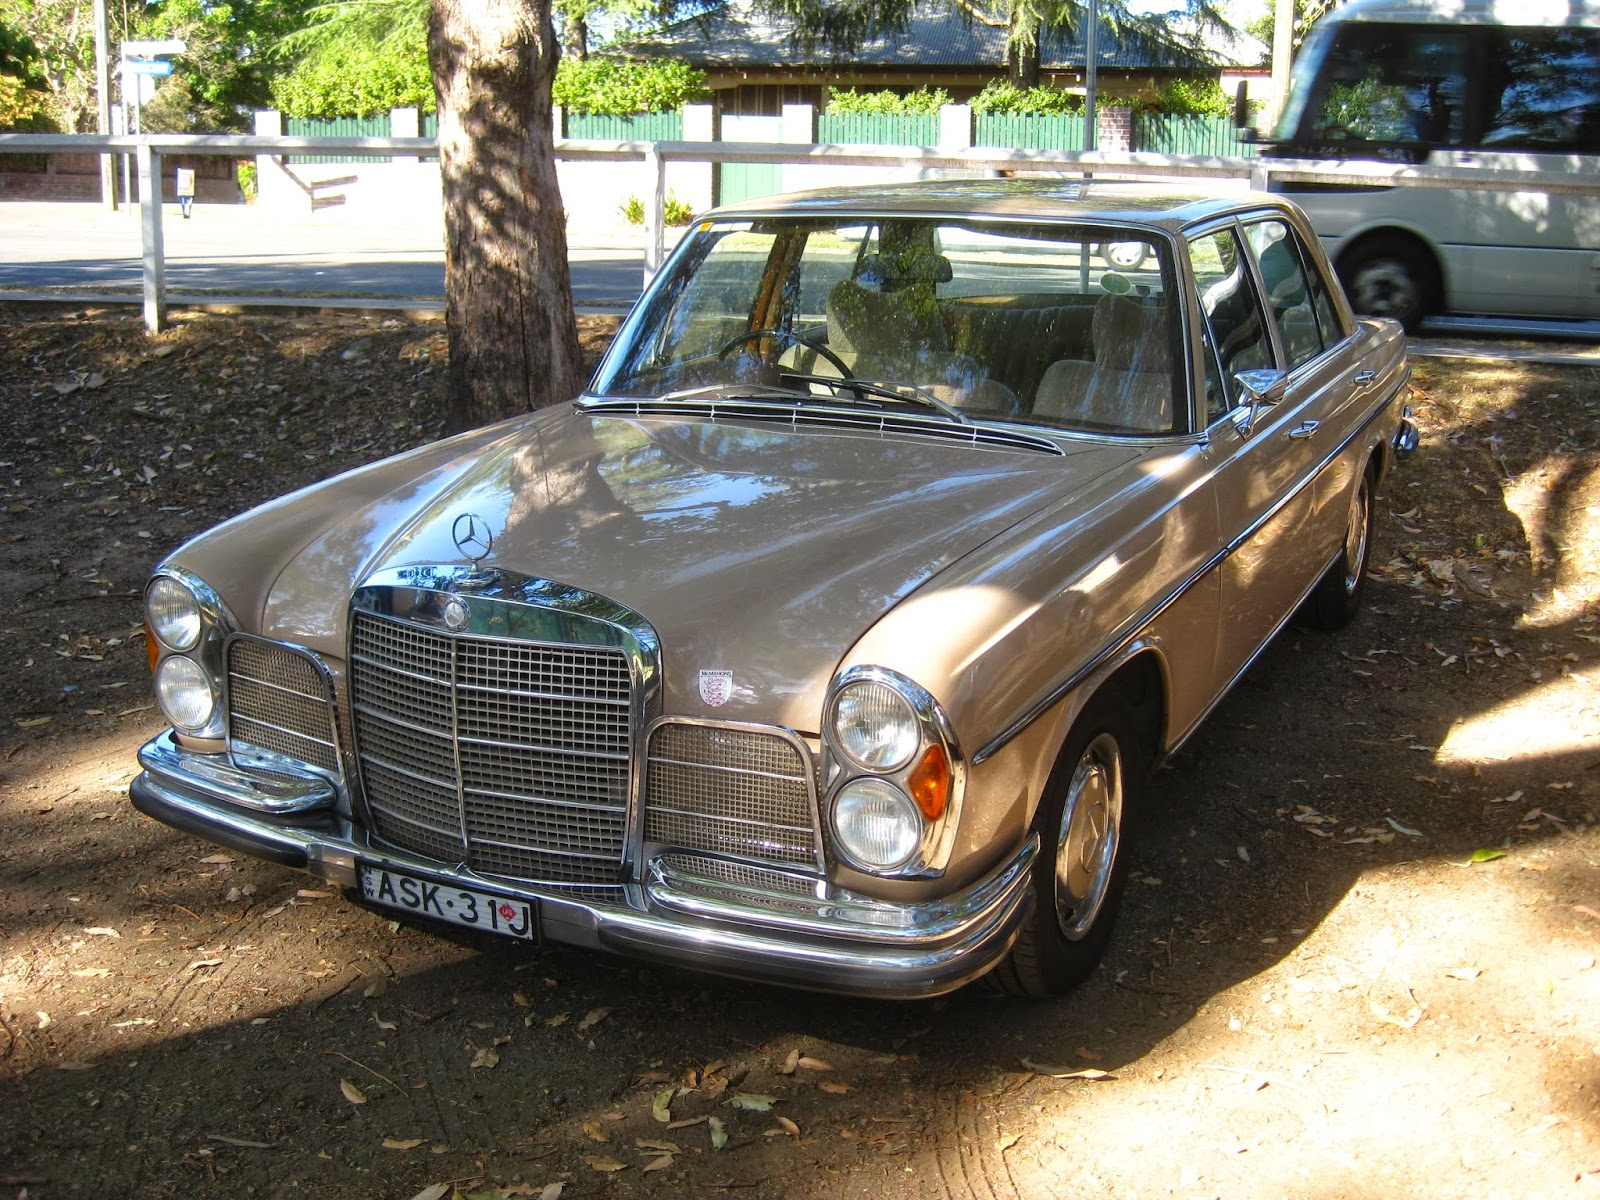 Aussie old parked cars 1972 mercedes benz w108 280 se 3 5 for 1972 mercedes benz